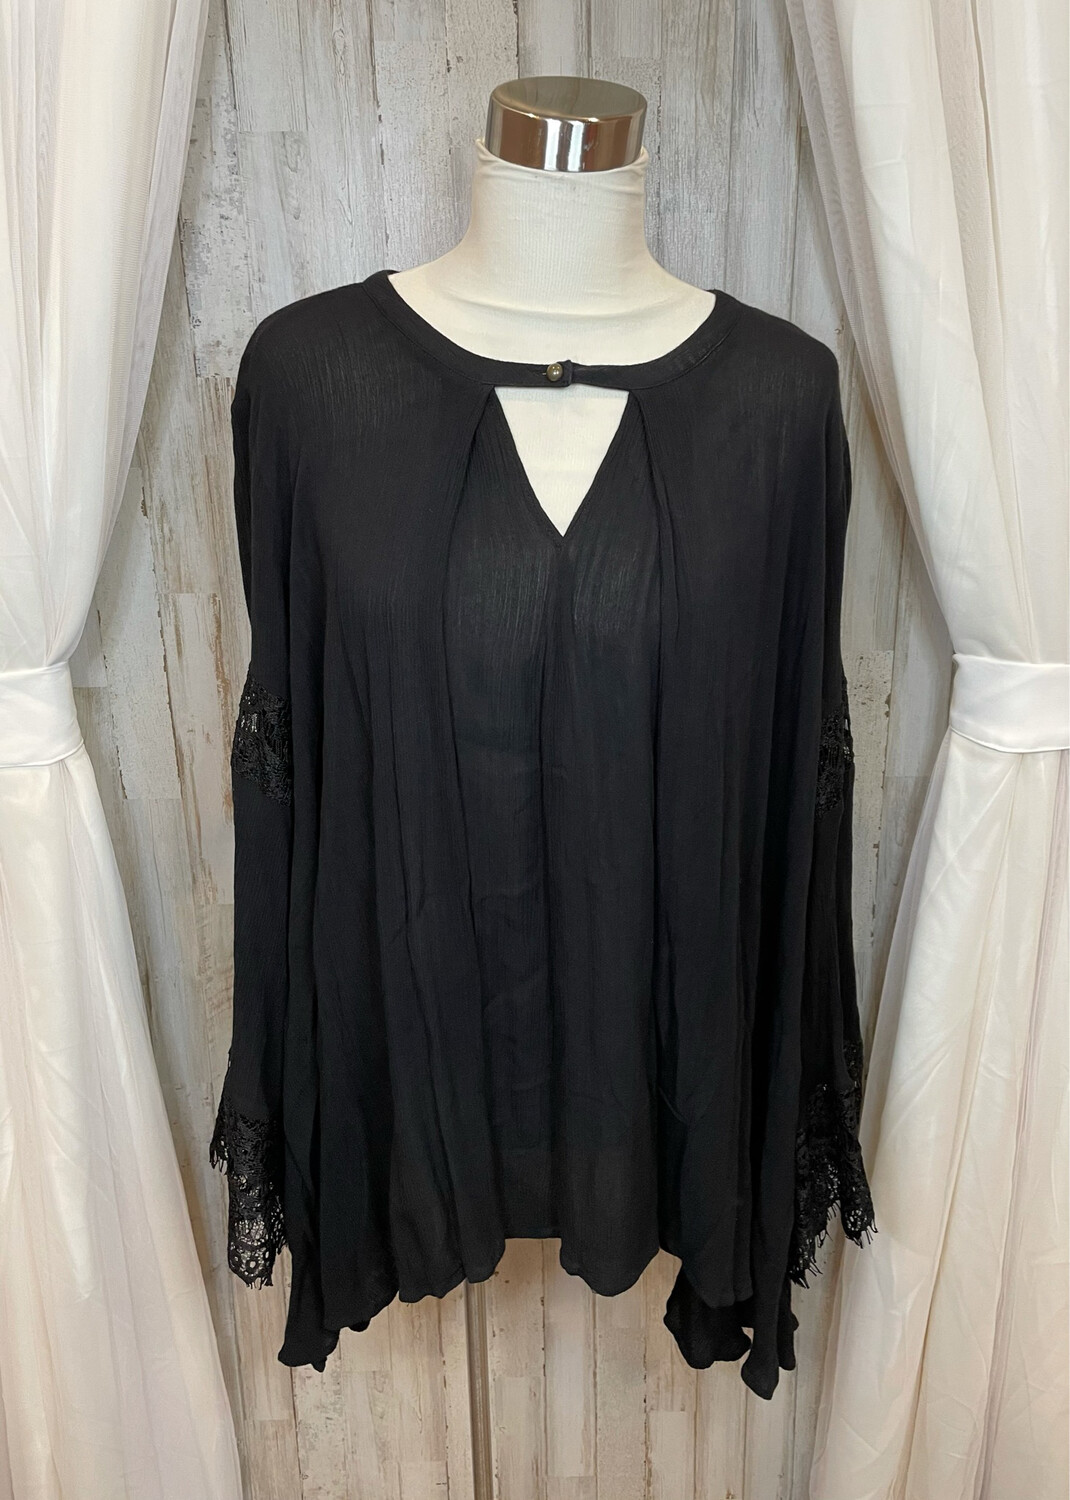 Jodifl Black Embroidered Bell Sleeve Tunic Top - L